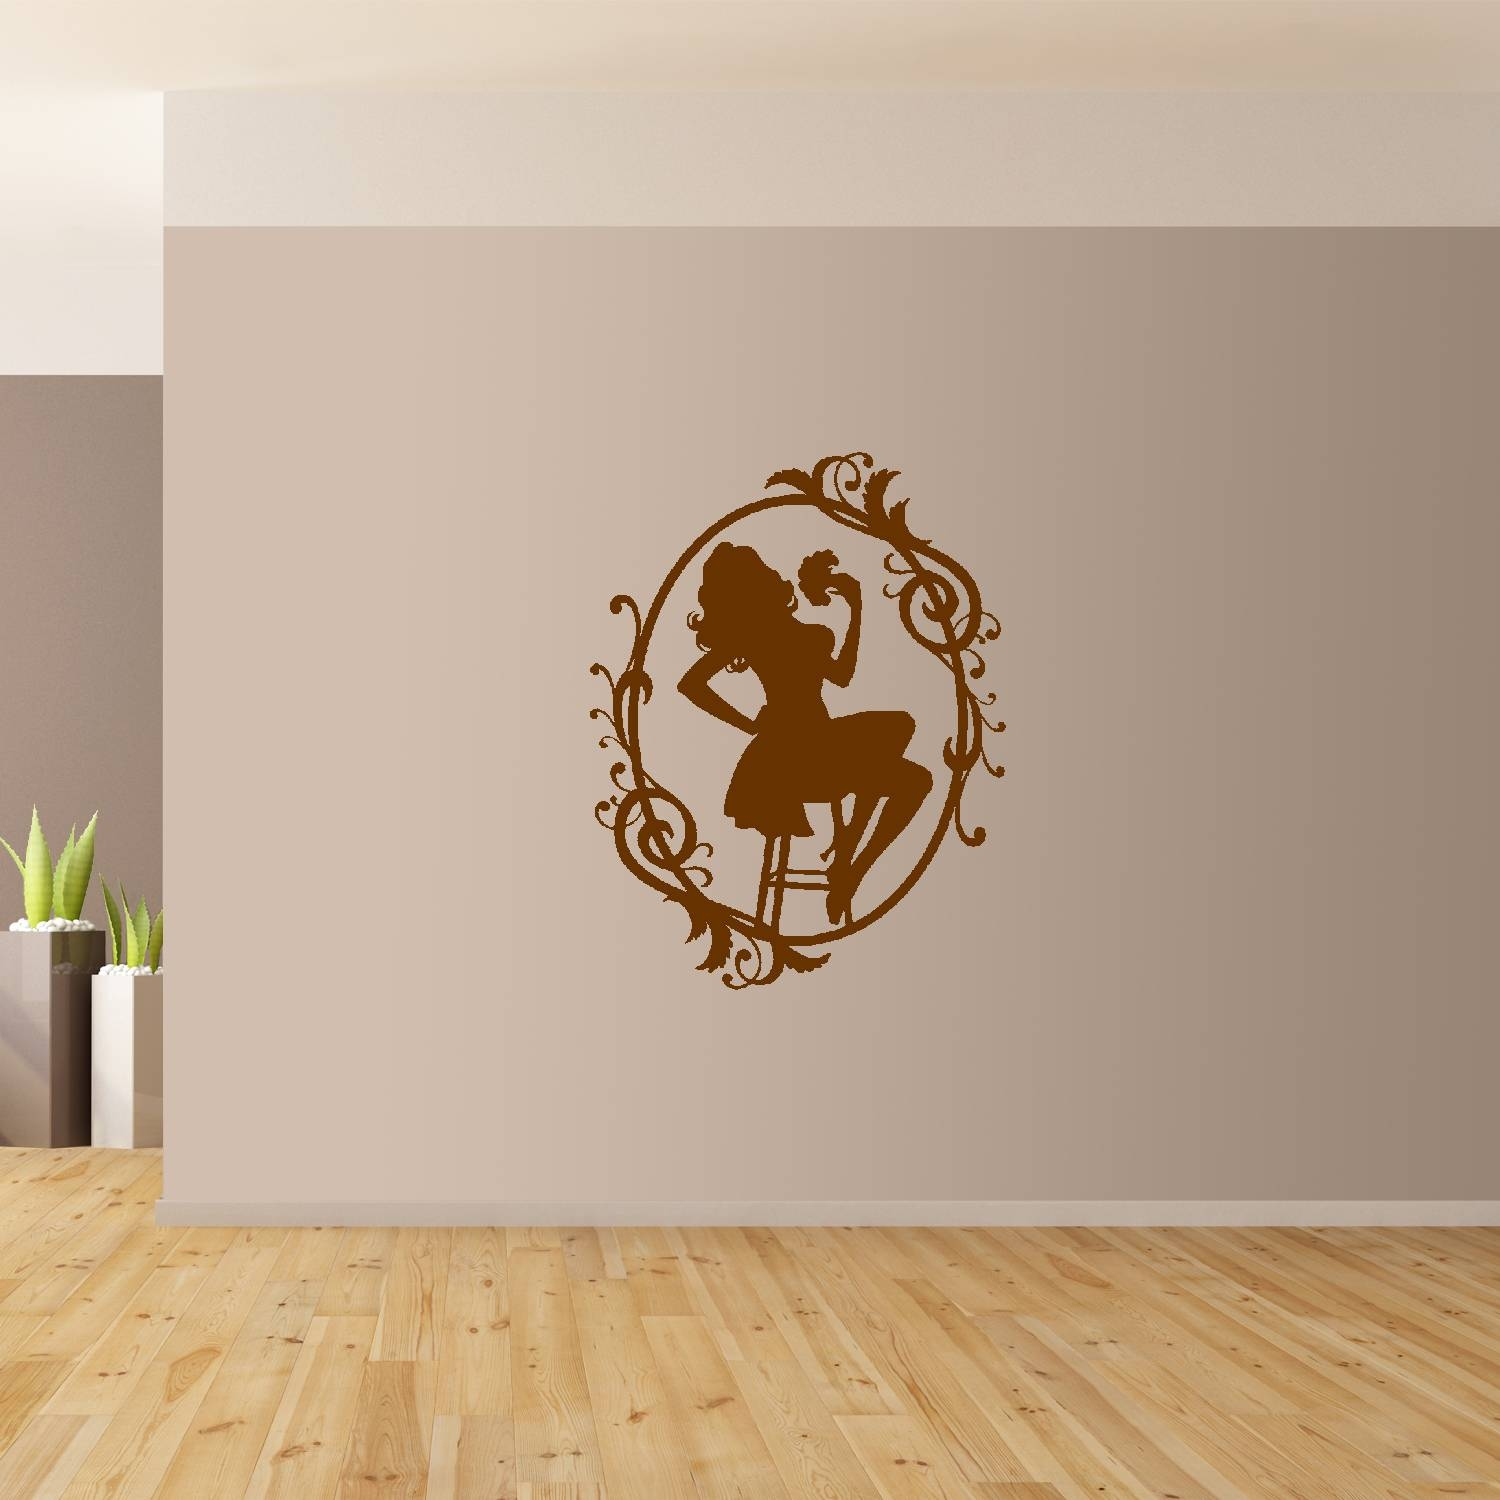 Cameo Wall Art – Wall Murals Ideas Intended For Most Recently Released Cameo Wall Art (View 7 of 20)